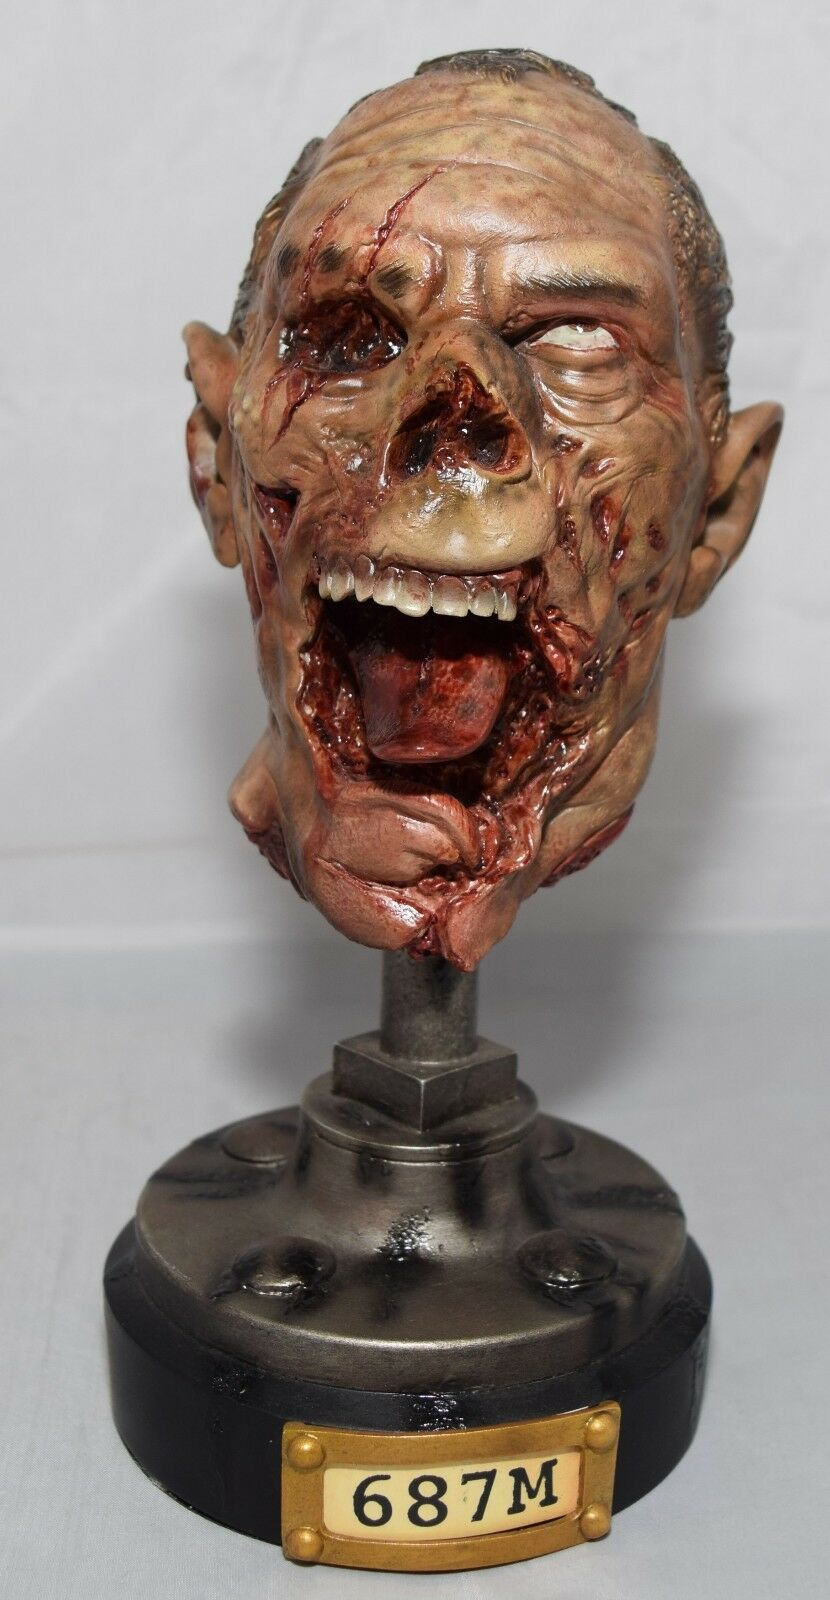 SIDESHOW COLLECTIBLES THE DEAD SPECIMENS LEGENDARY SCALE BUST OVERBITE 2001001